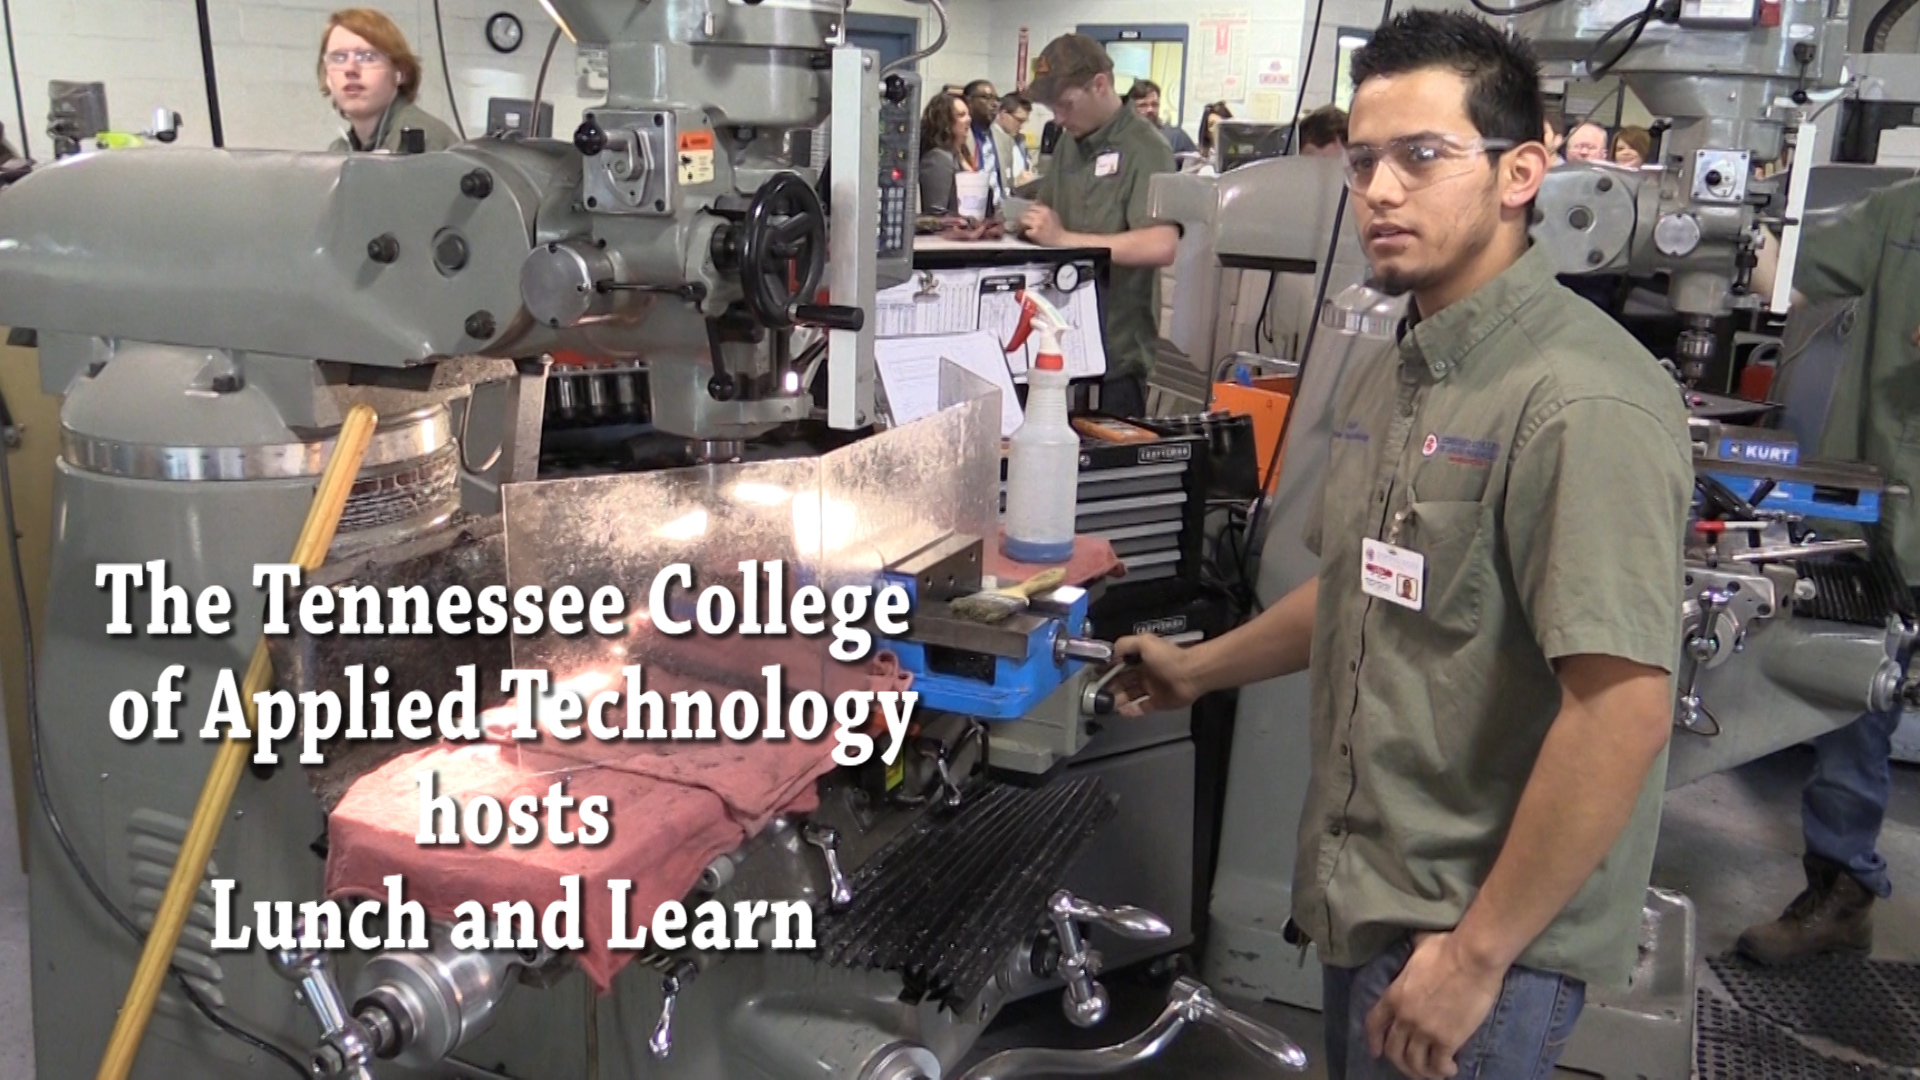 VIDEO - TCAT hosts lunch and learn